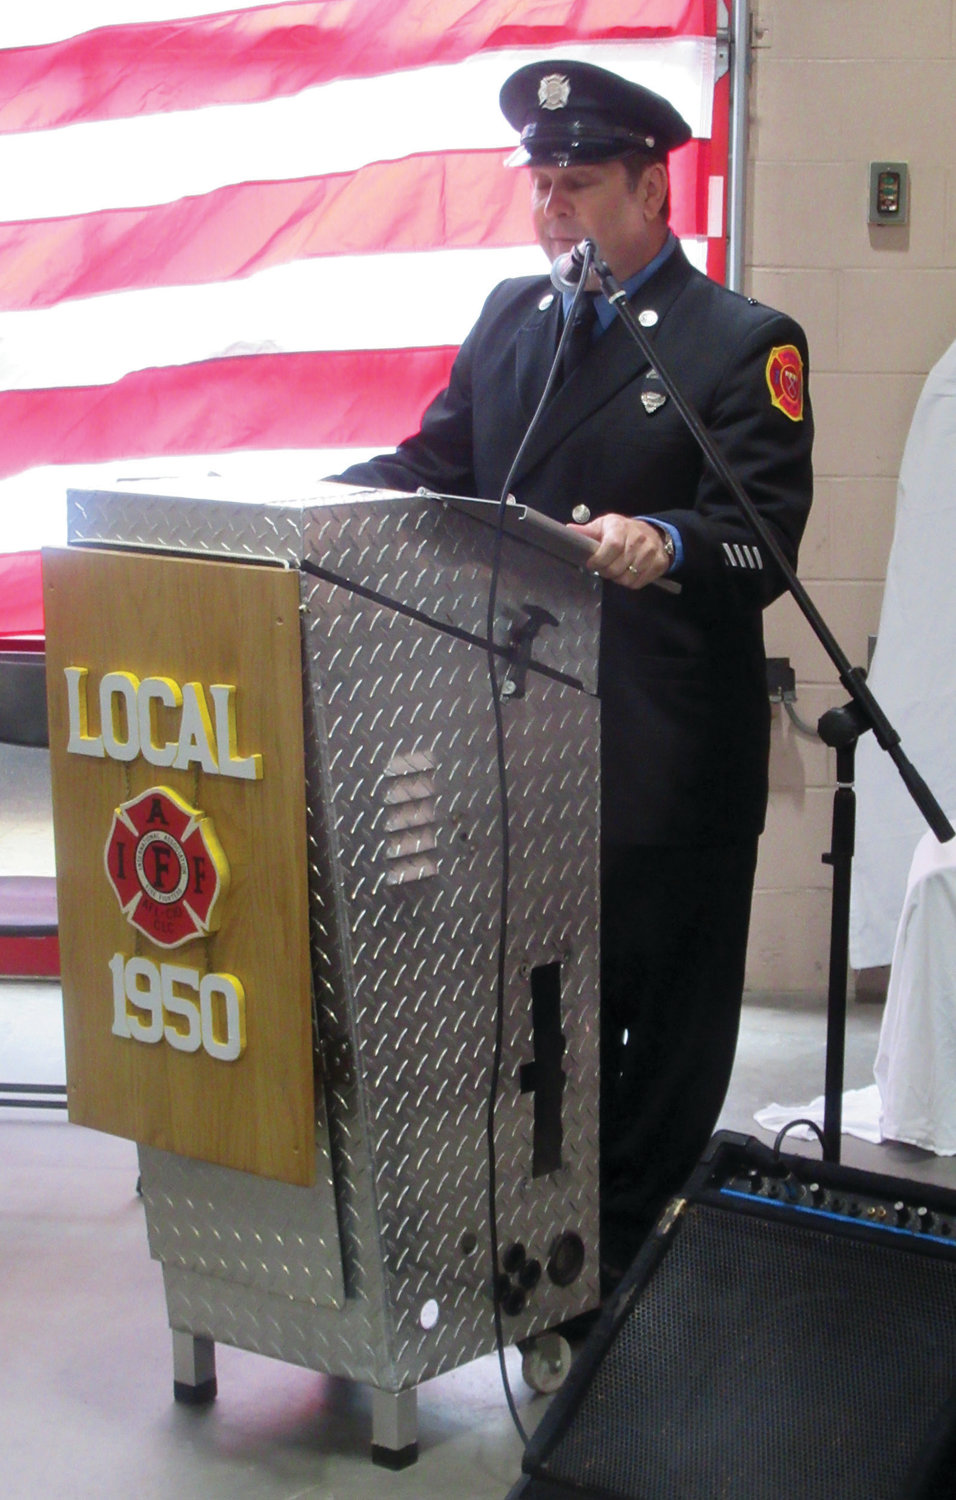 HUMBLE HOST: Dave Pingitore, general secretary-treasurer of Local 1950, served as emcee for Sunday's moving memorial ceremony to honor 19 late members of the Johnston Fire Department.